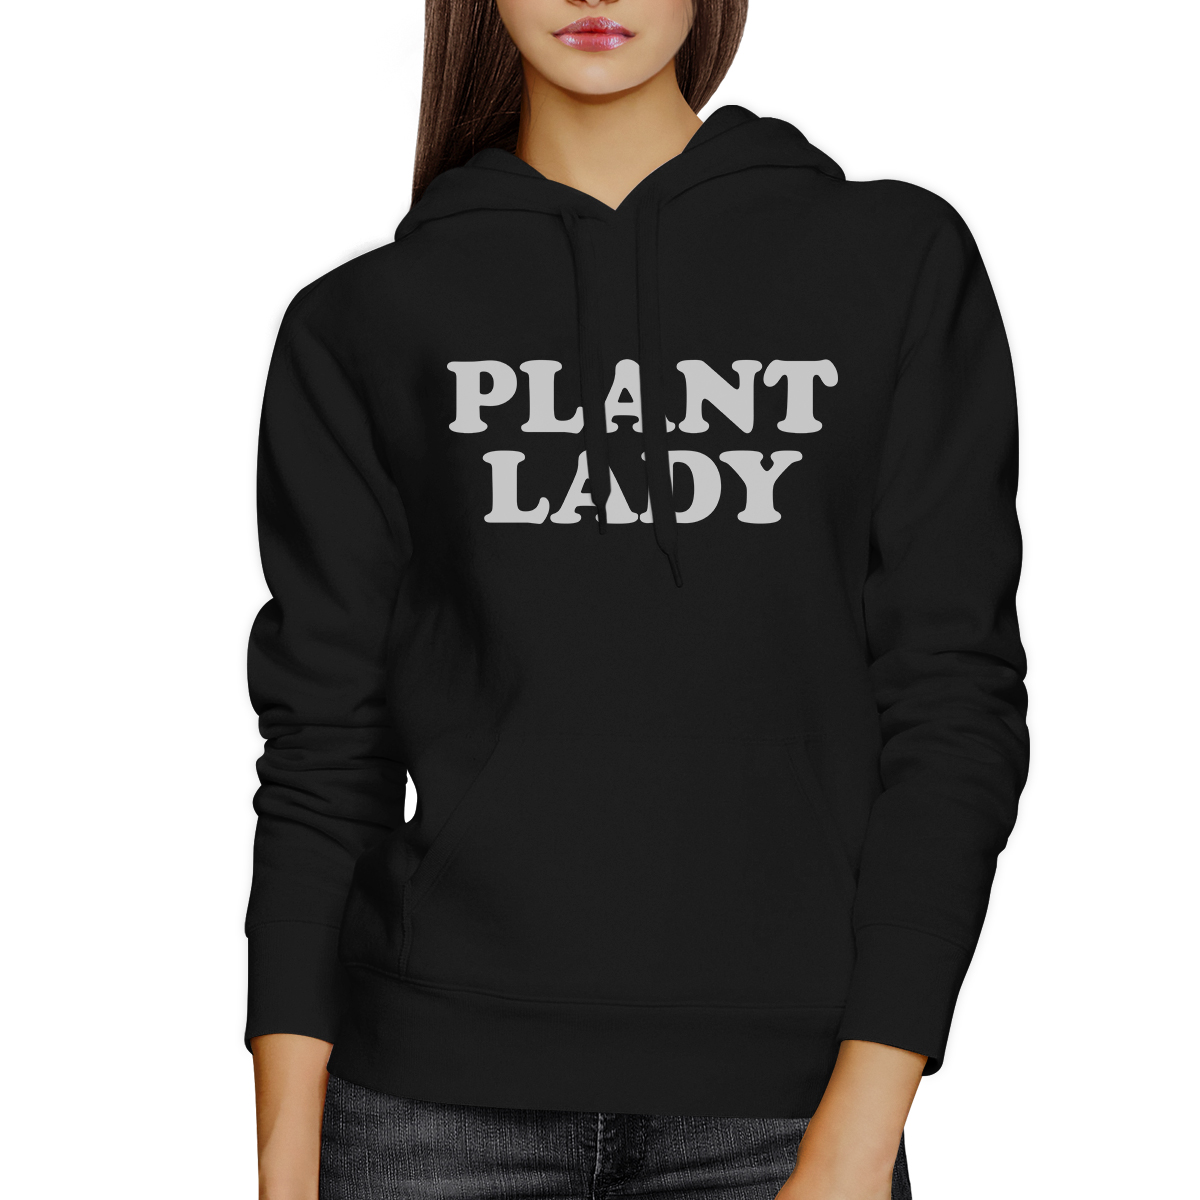 Details about  /Plant Lady Unisex Cute Graphic Hoodie Unique Gift Ideas For Her